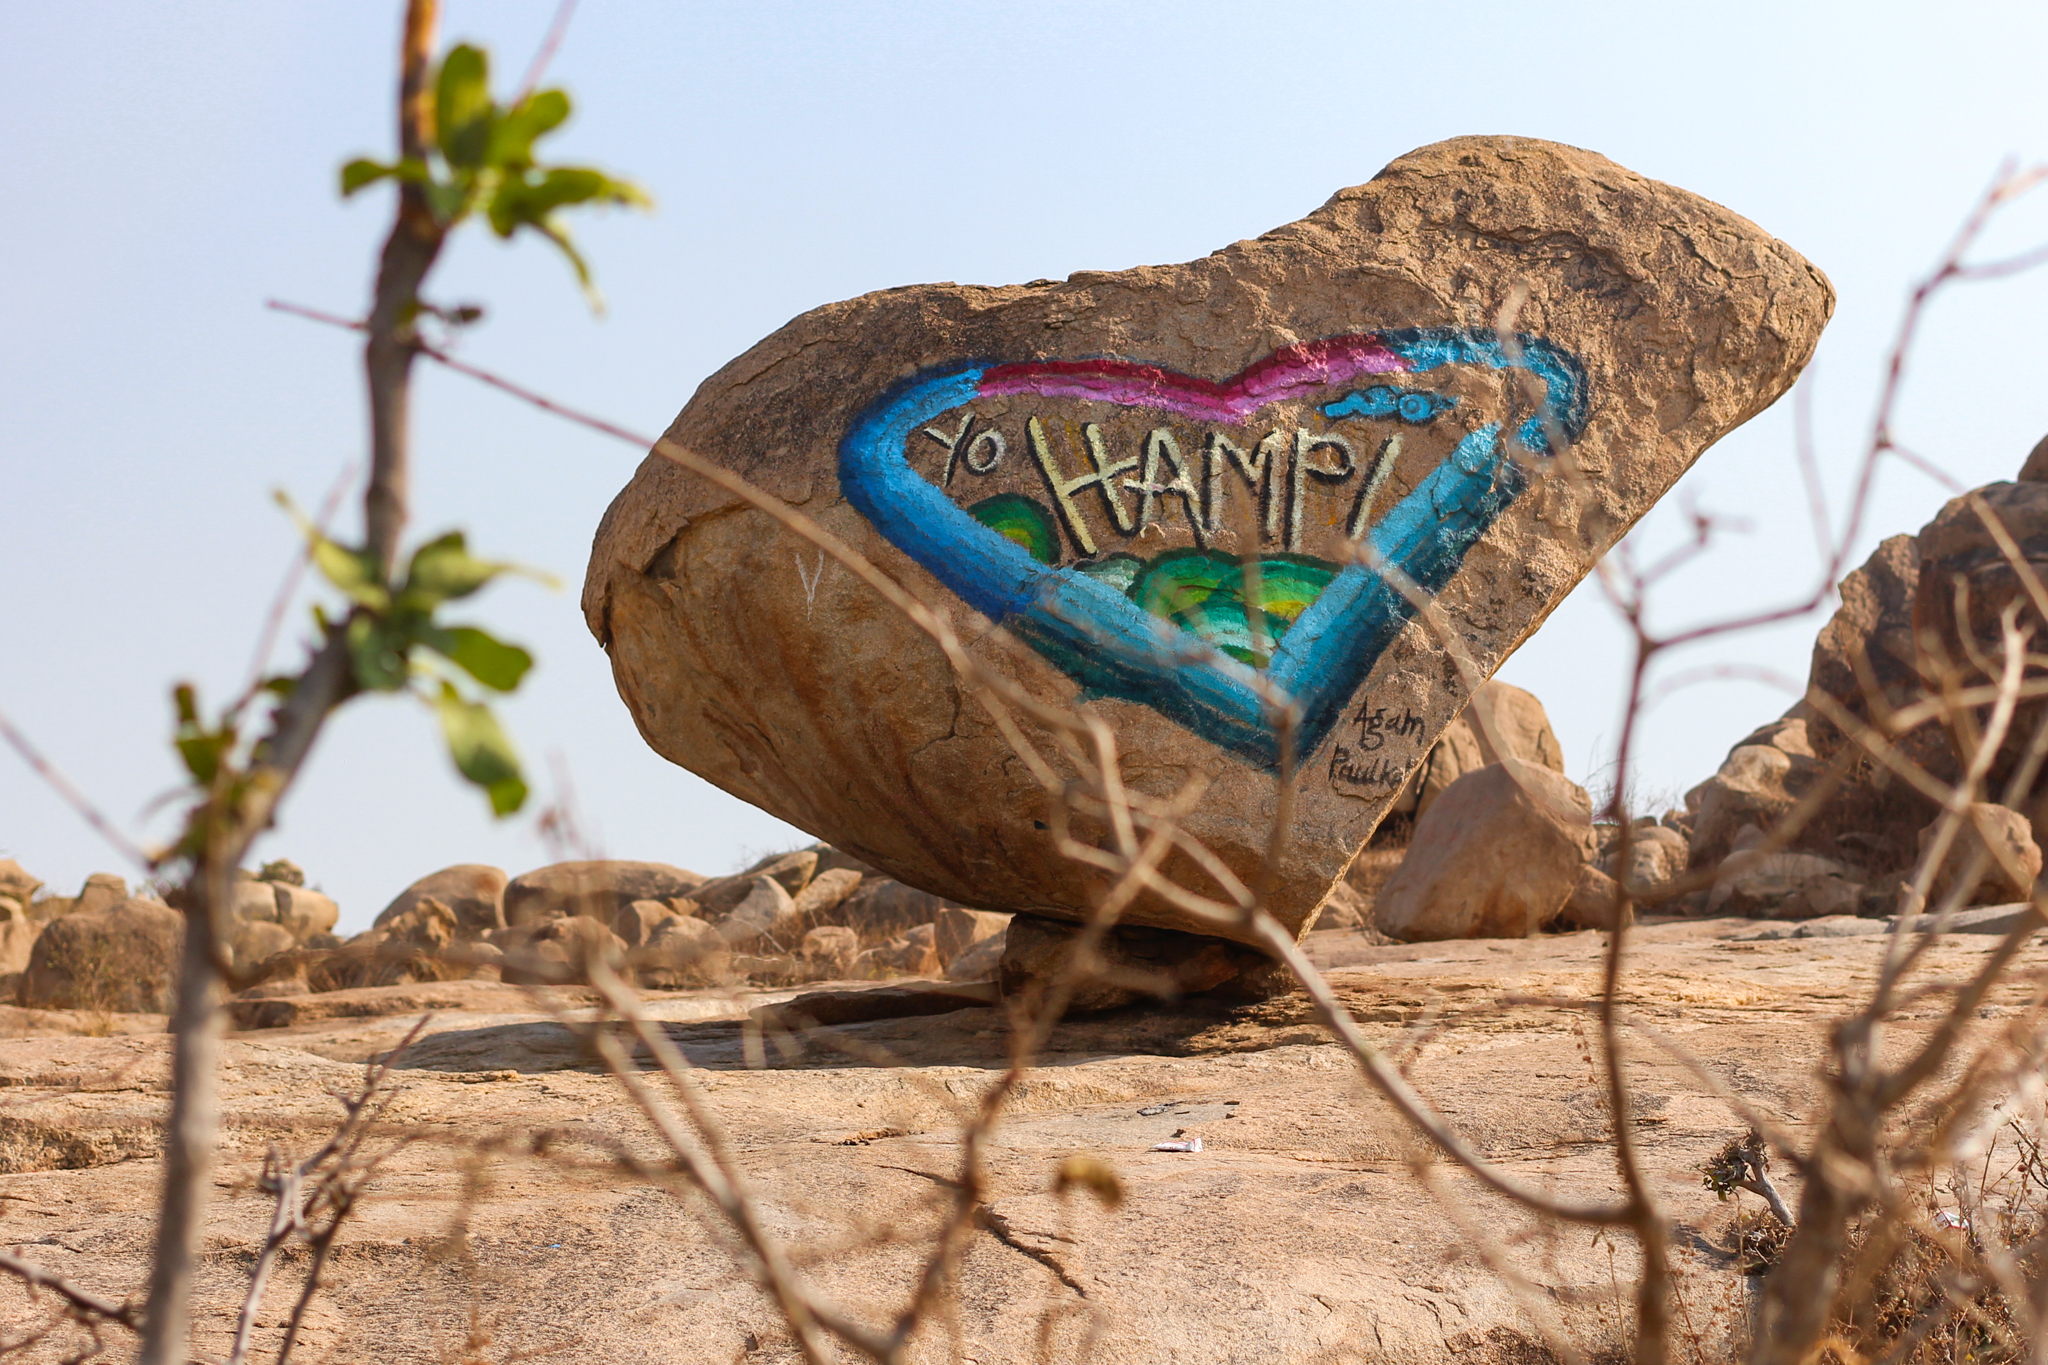 A hand painted boulder I discovered on a scooter ride outside of Hampi